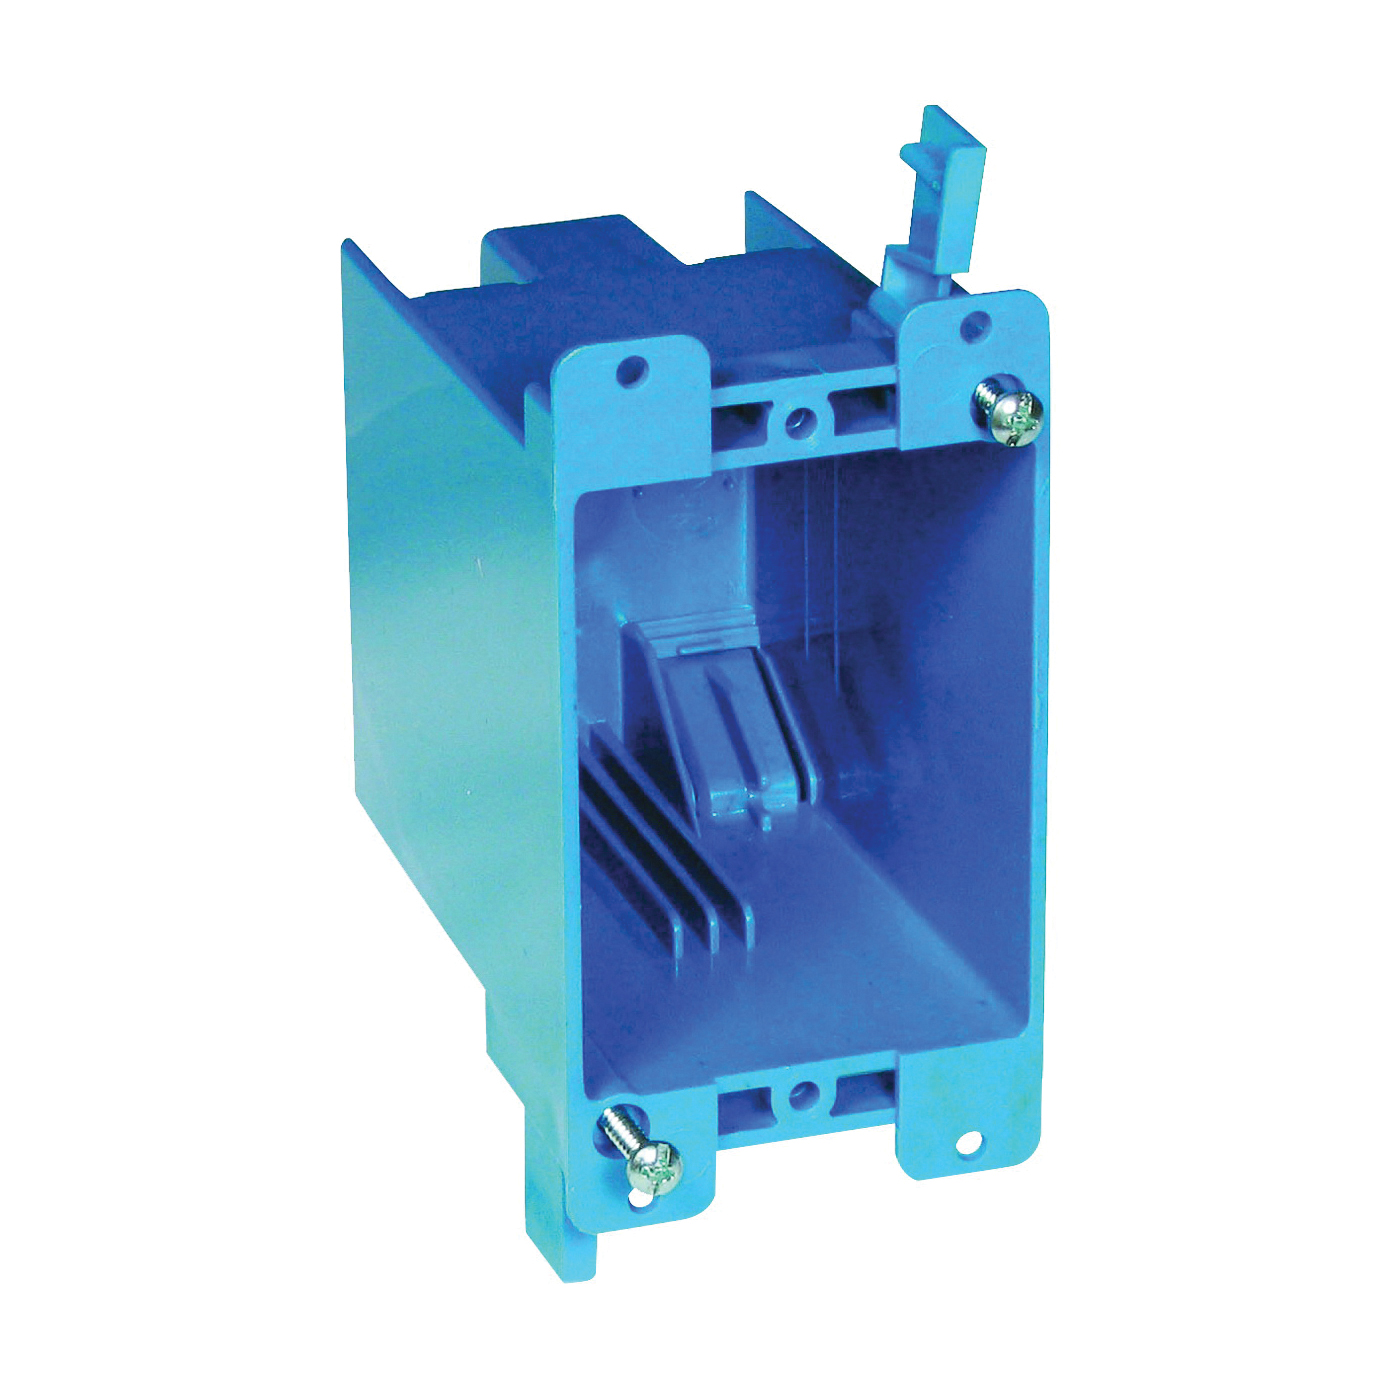 Picture of Carlon B120R Outlet Box, 1-Gang, PVC, Blue, Clamp Mounting